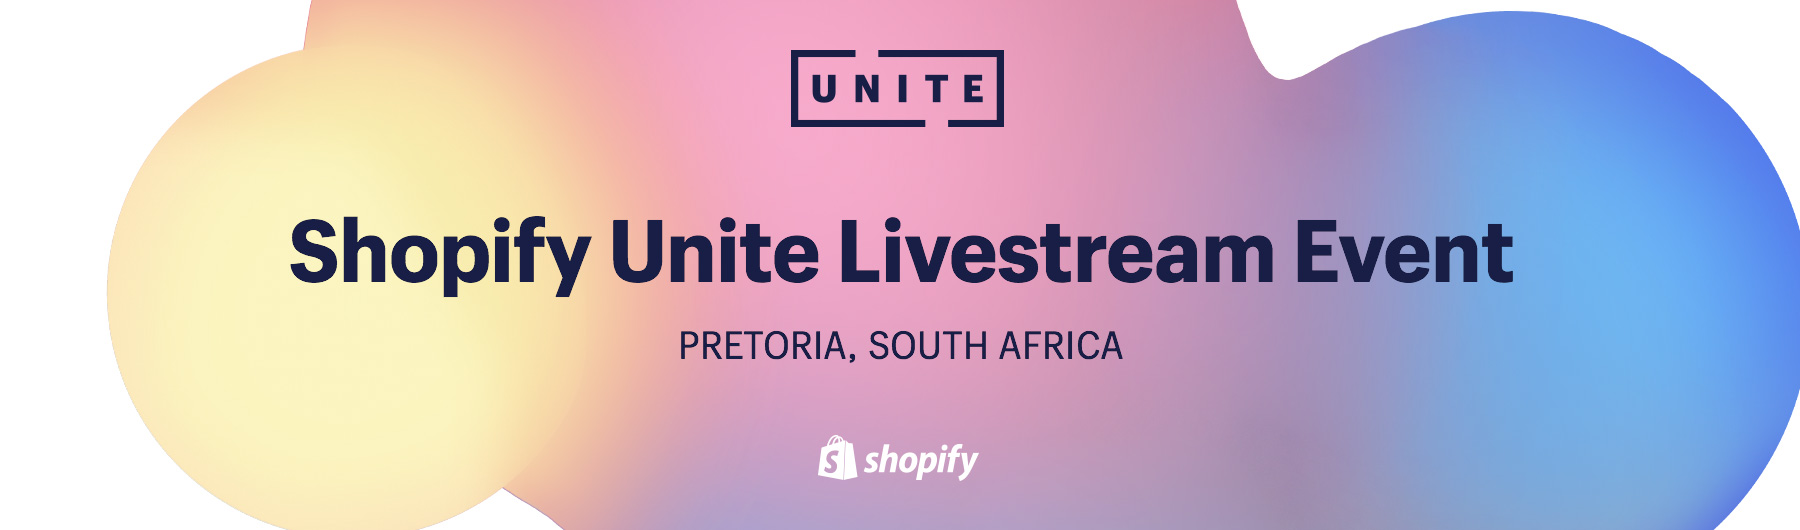 Shopify Unite Livestream Event: Pretoria